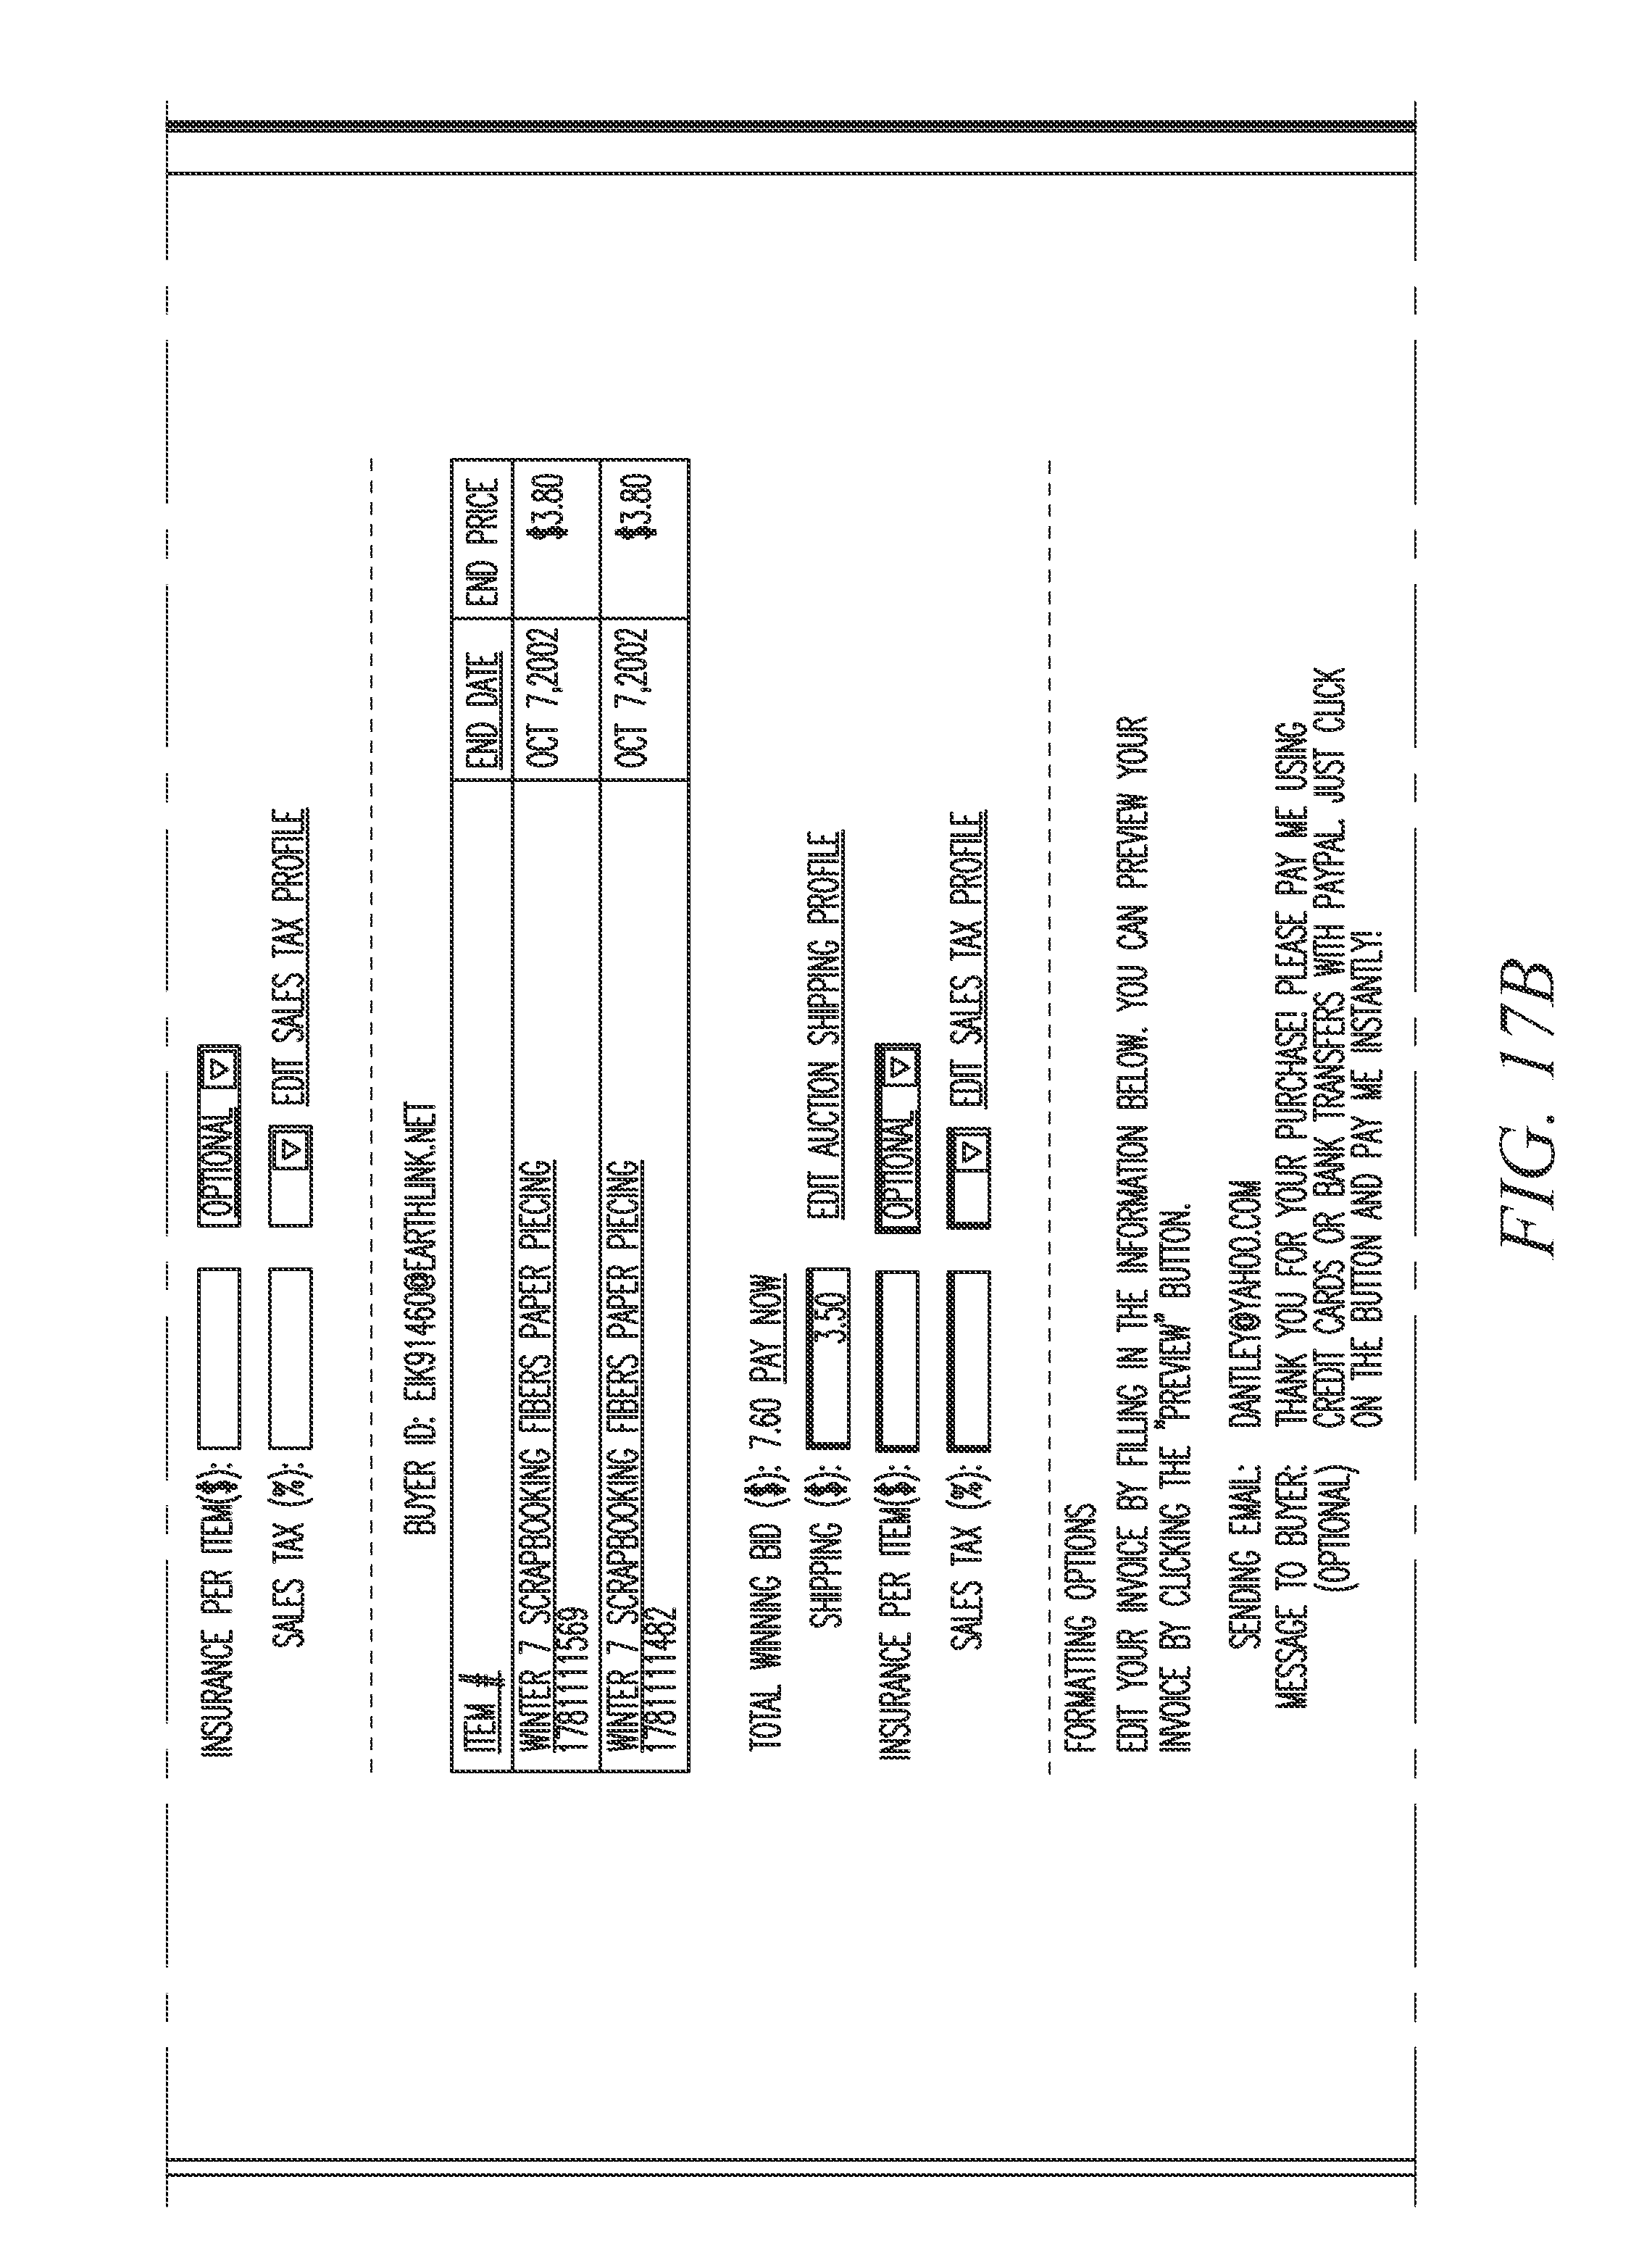 How To Organize Tax Receipts Word Patent Us  Invoicing System  Google Patents Simple Cash Receipt Excel with Read Receipts Email Word Patent Drawing Invoices Online Word